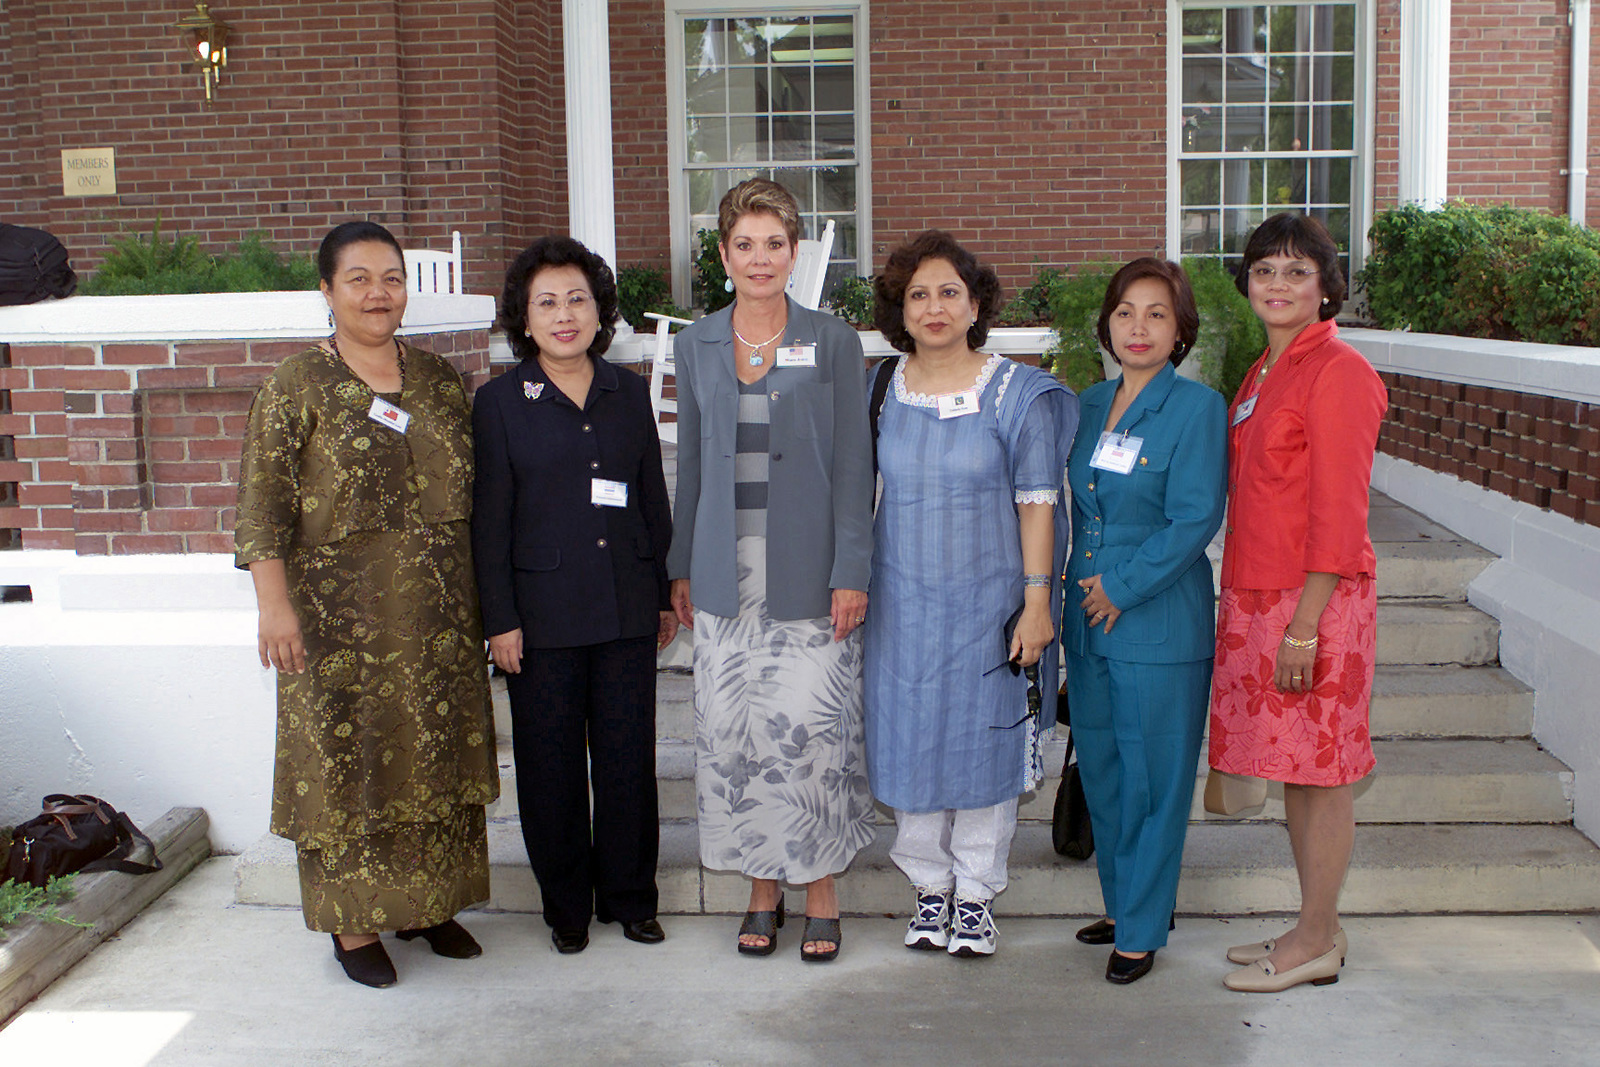 Mrs. Diane Jones (third from left), wife of General James L. Jones, Commandant of the United States Marine Corps, poses for a photo with other commandant wives at the World Wide Commandants Conference at Marine Corps Base, Camp Lejuene, North Carolina